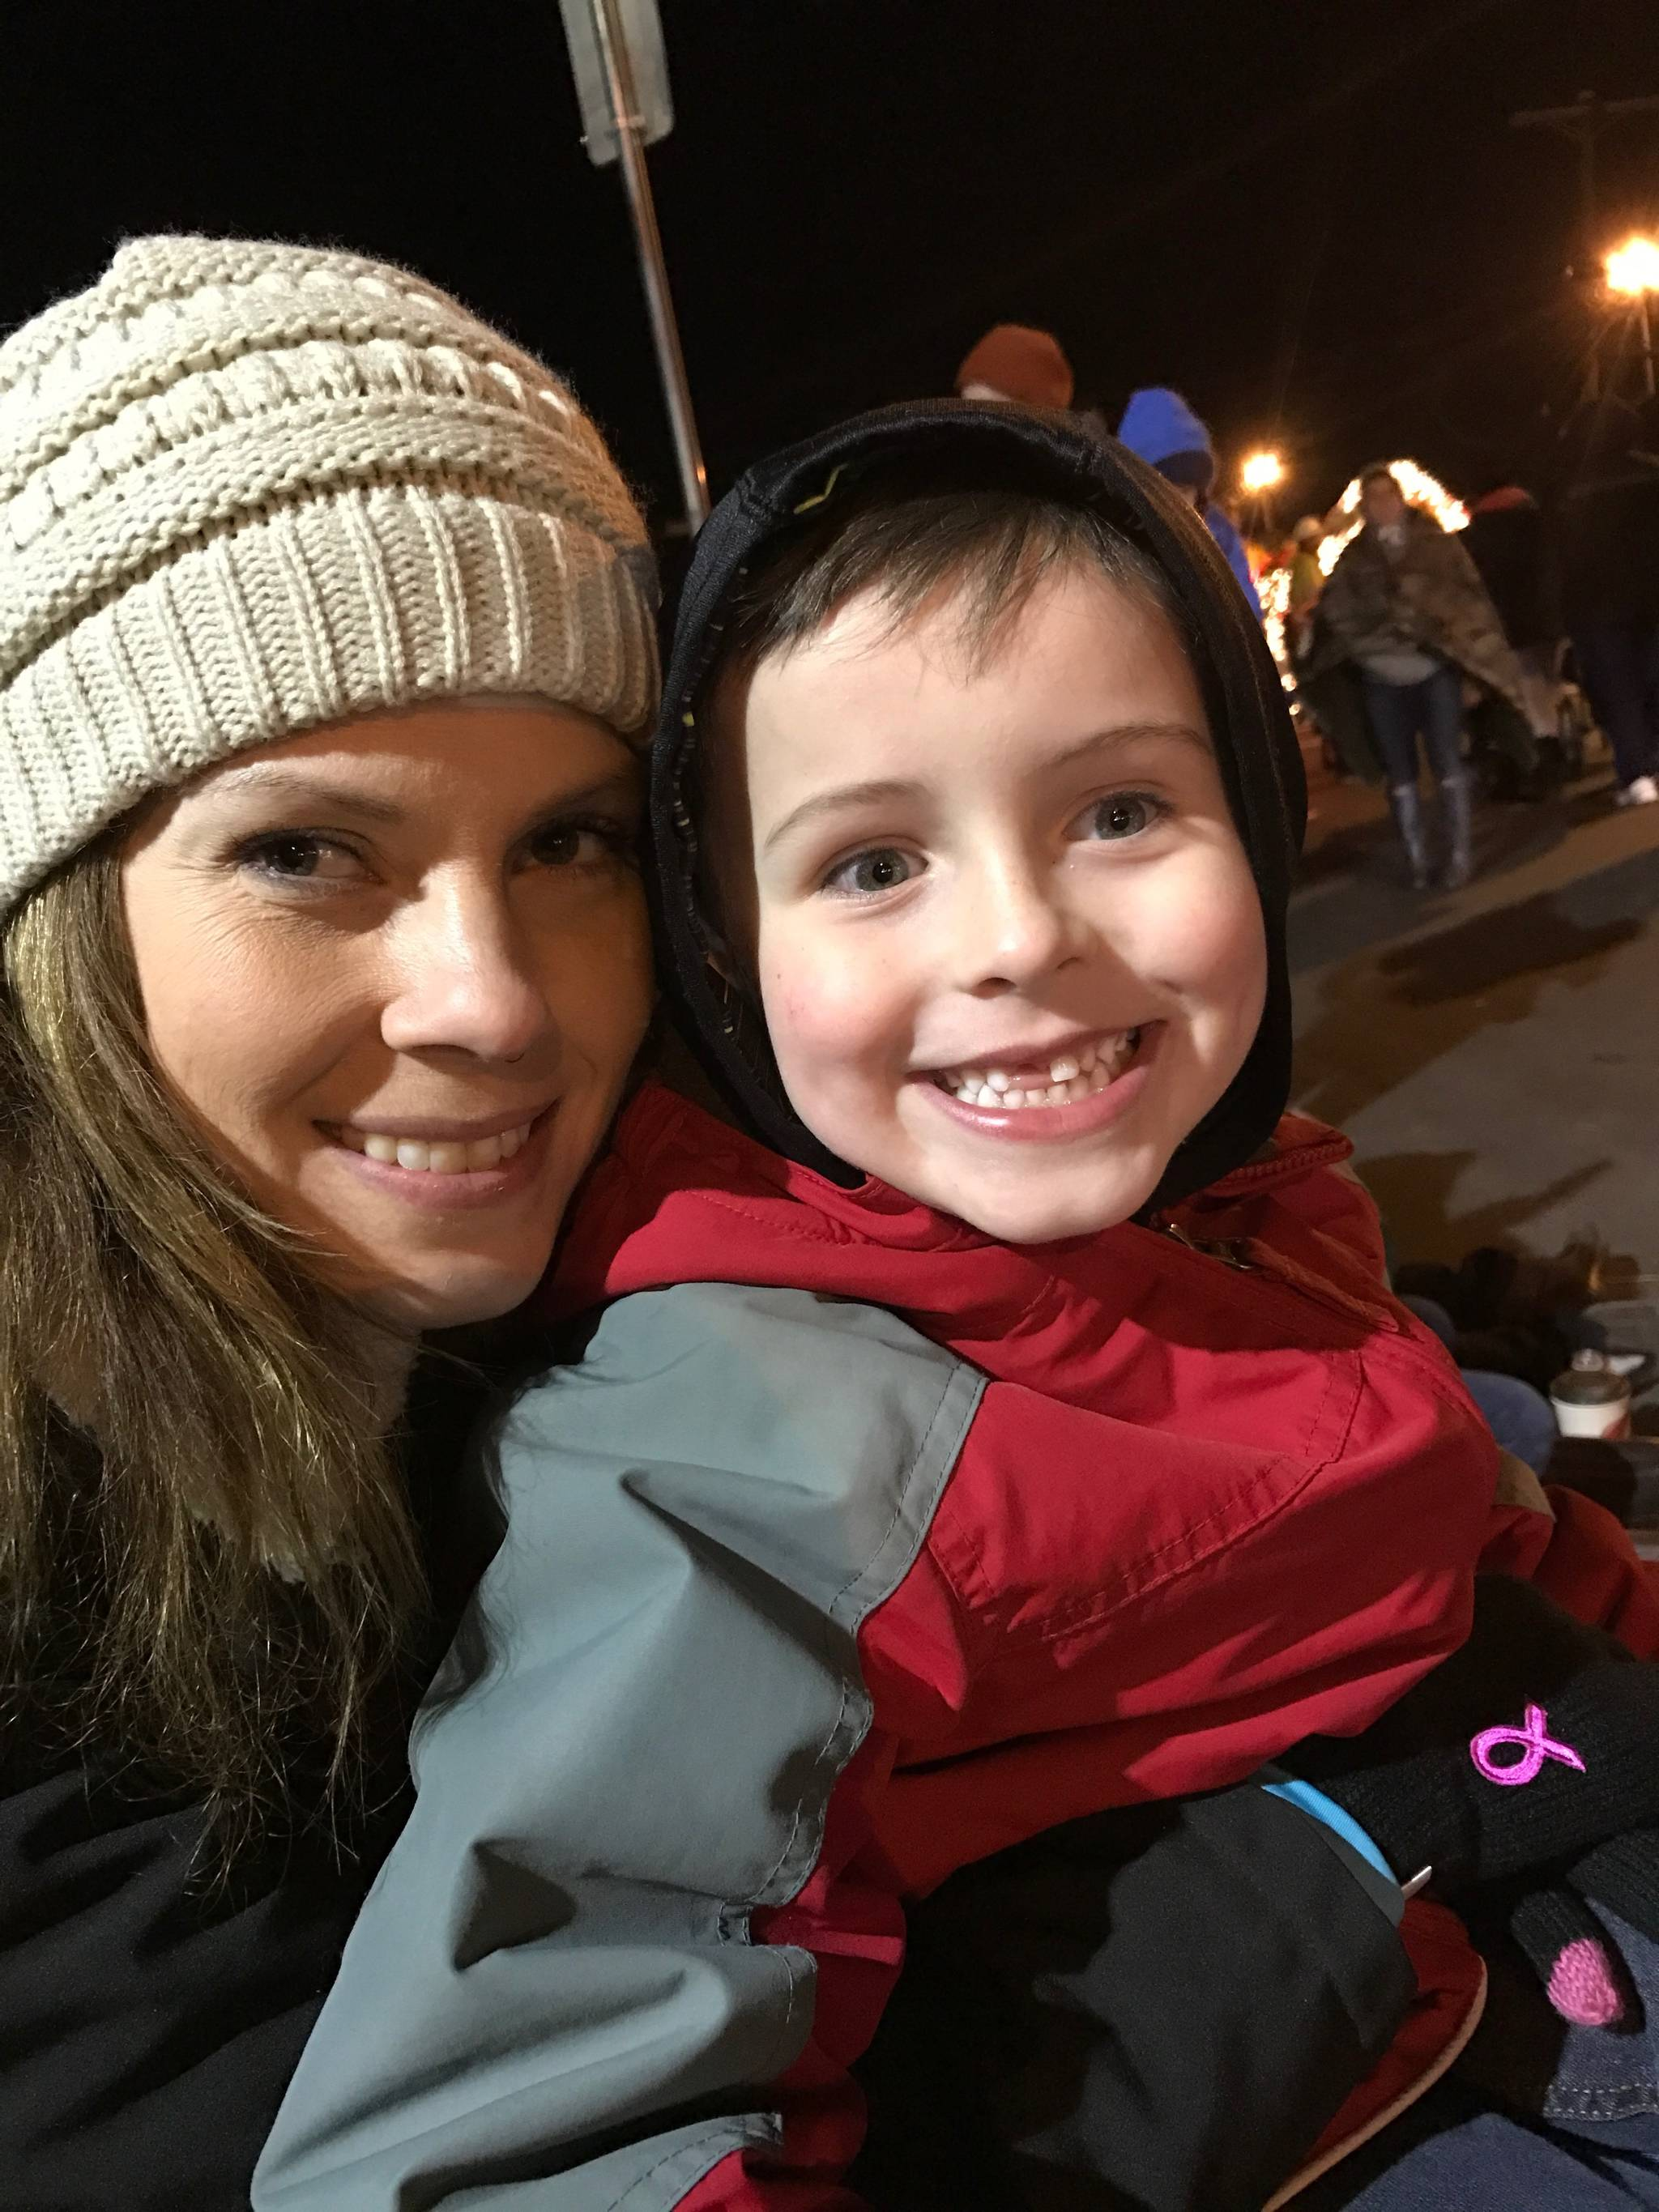 Karen McLaren with her six-year-old nephew during better times. Her nephew is having to learn a lot about cancer and the cost of cancer. Submitted photo